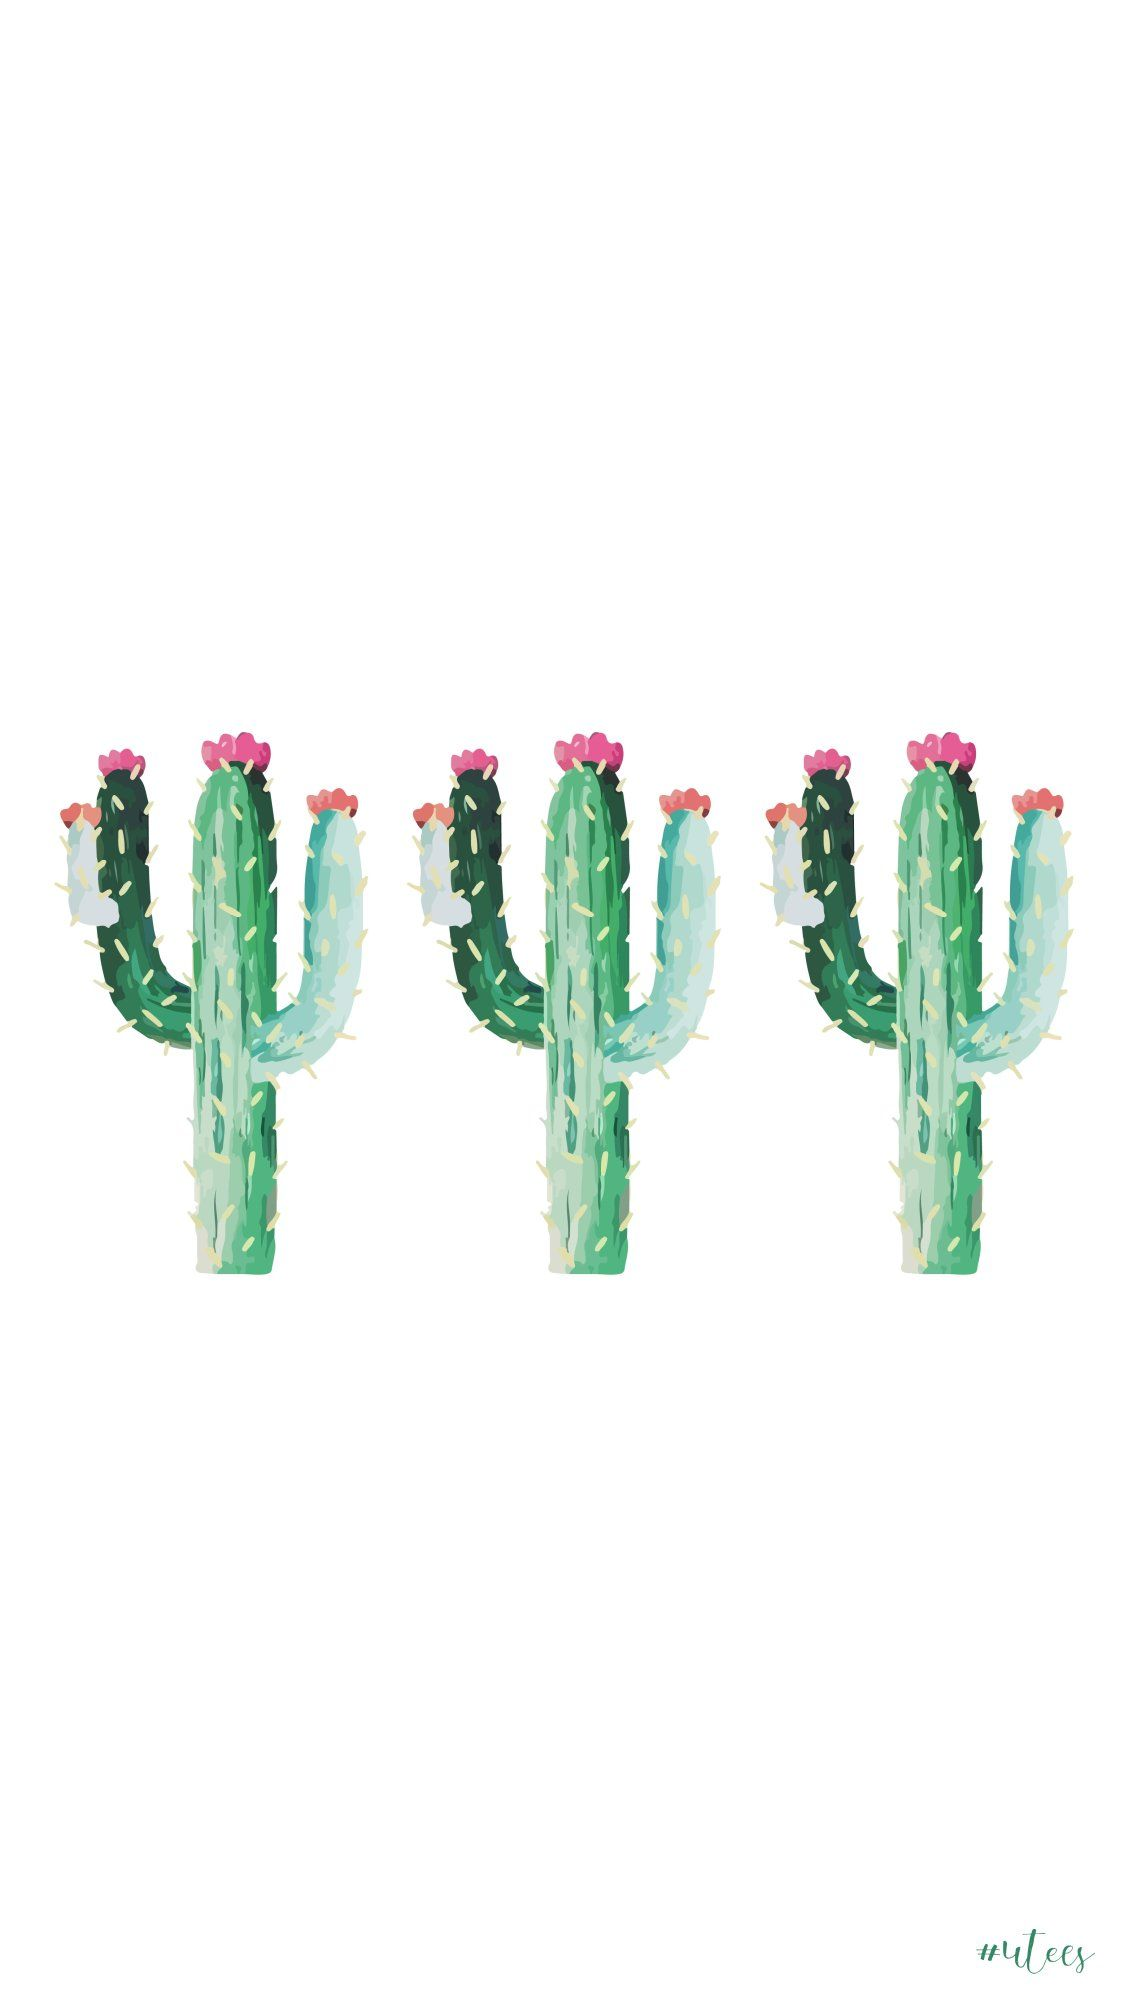 handdrawn cactuses i screensaver i iphone wallpapers i phone